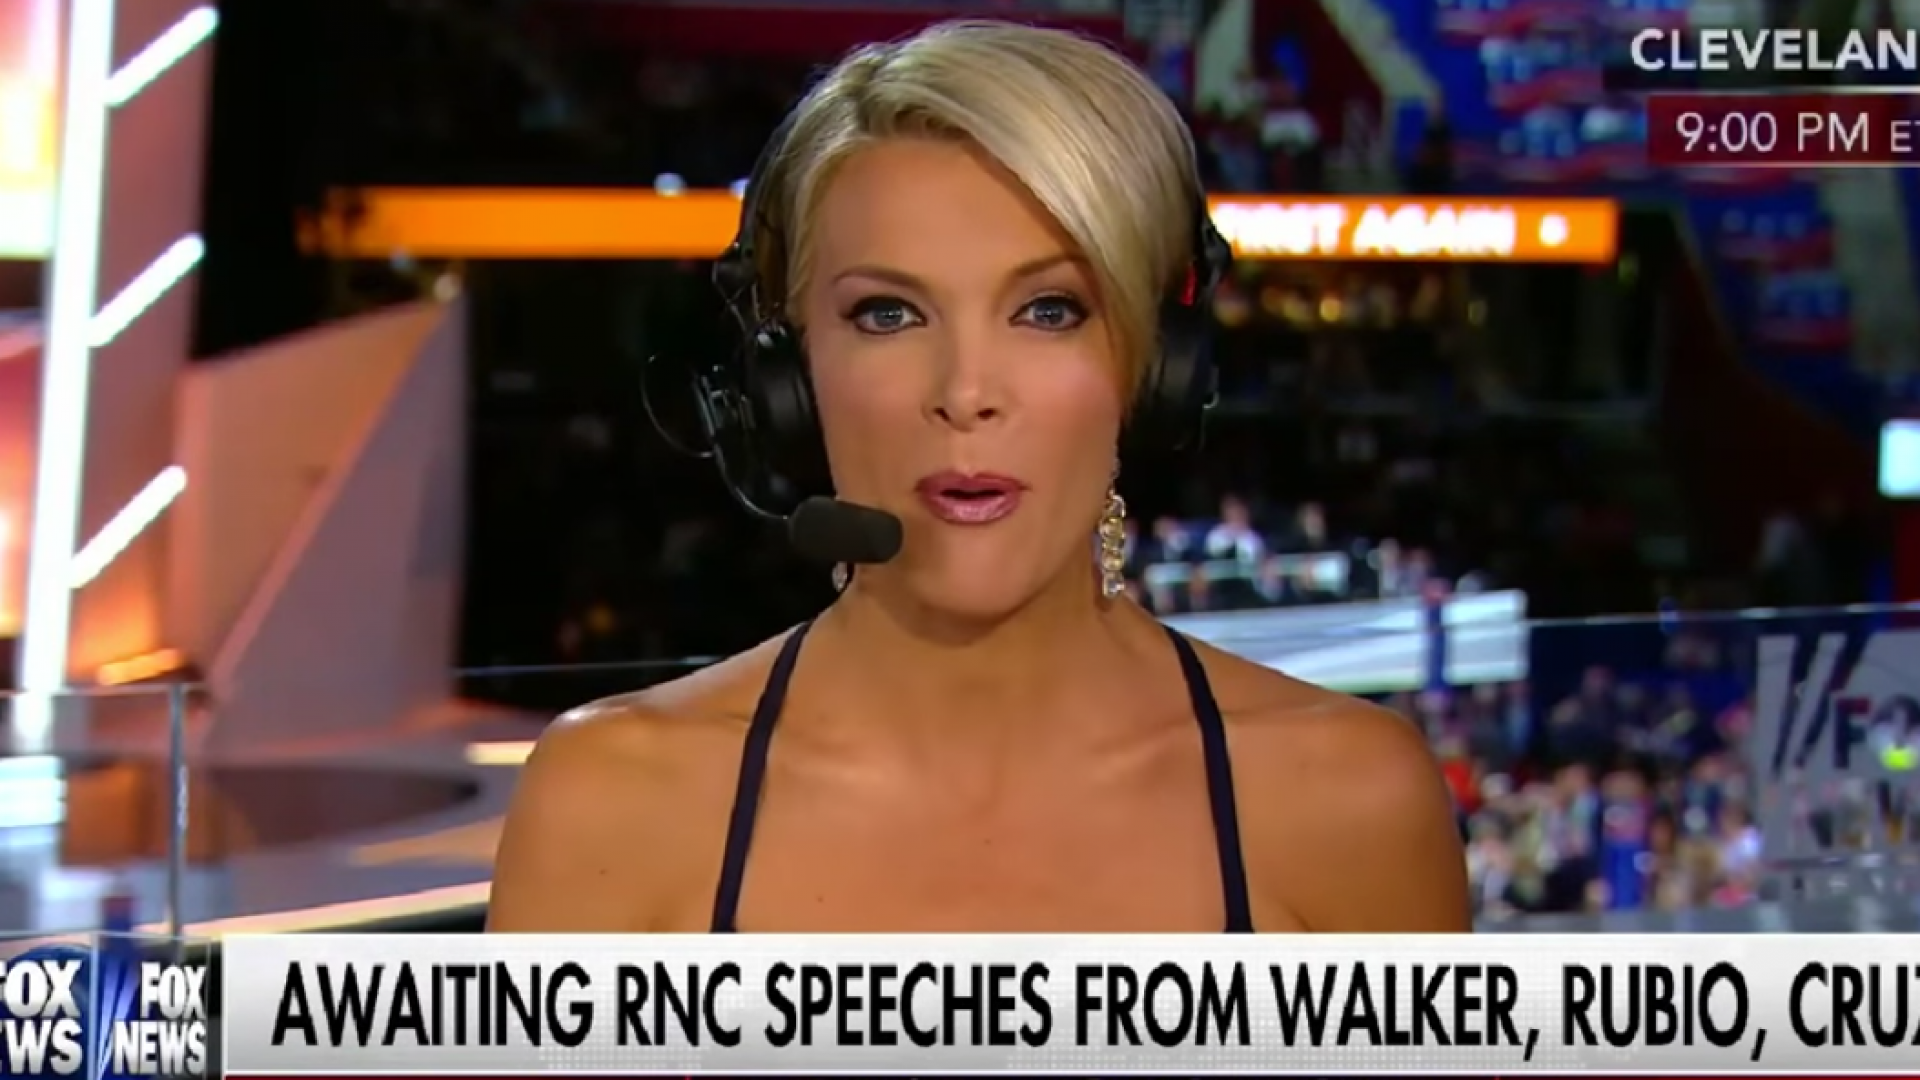 No, Megyn Kelly Should Not Have Worn That Dress